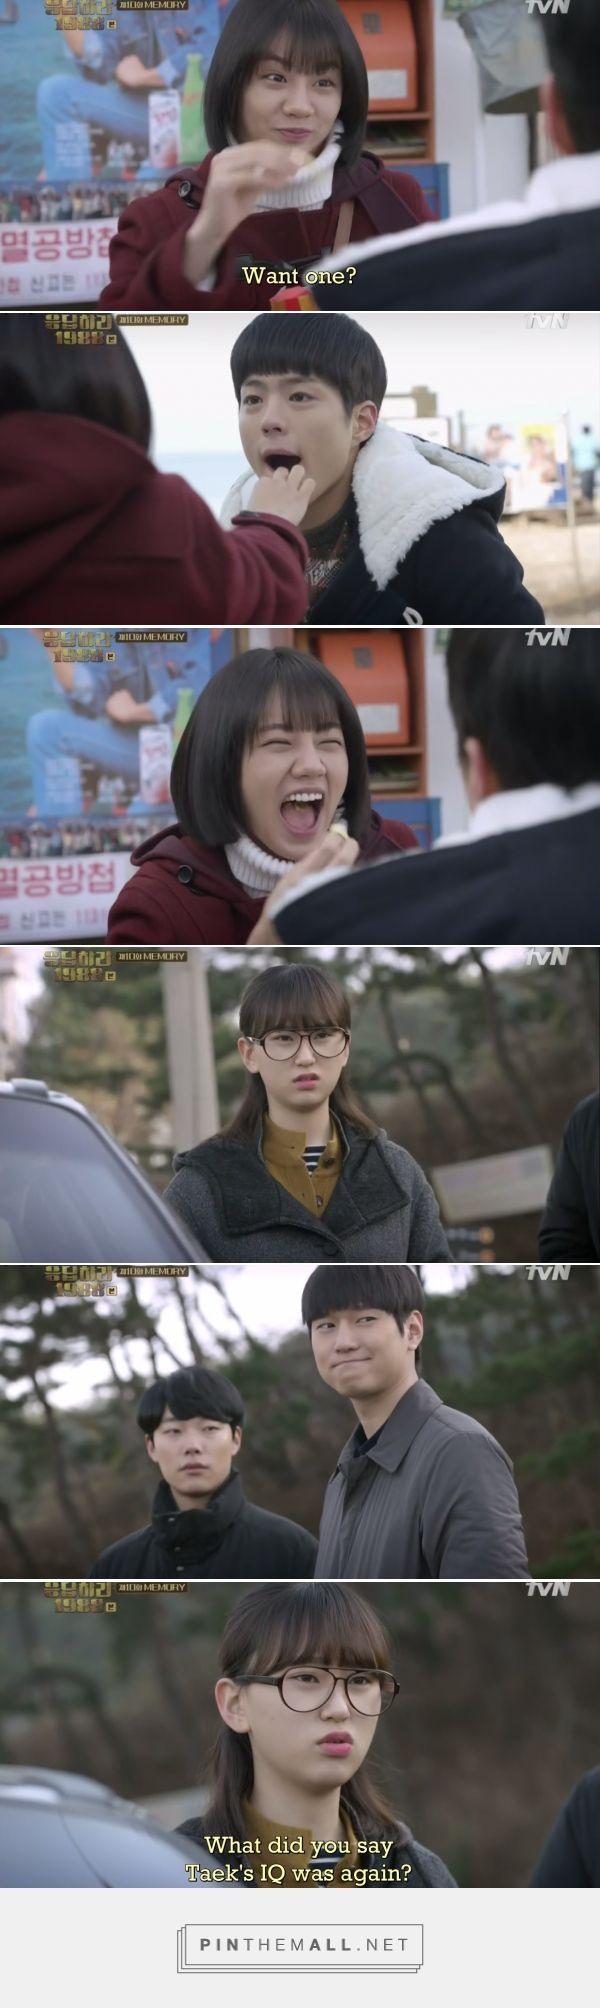 #reply 1988 #korean #drama Get more info here: https://goo.gl/nIOeX9  Taek IQ of cuteness overload! :D